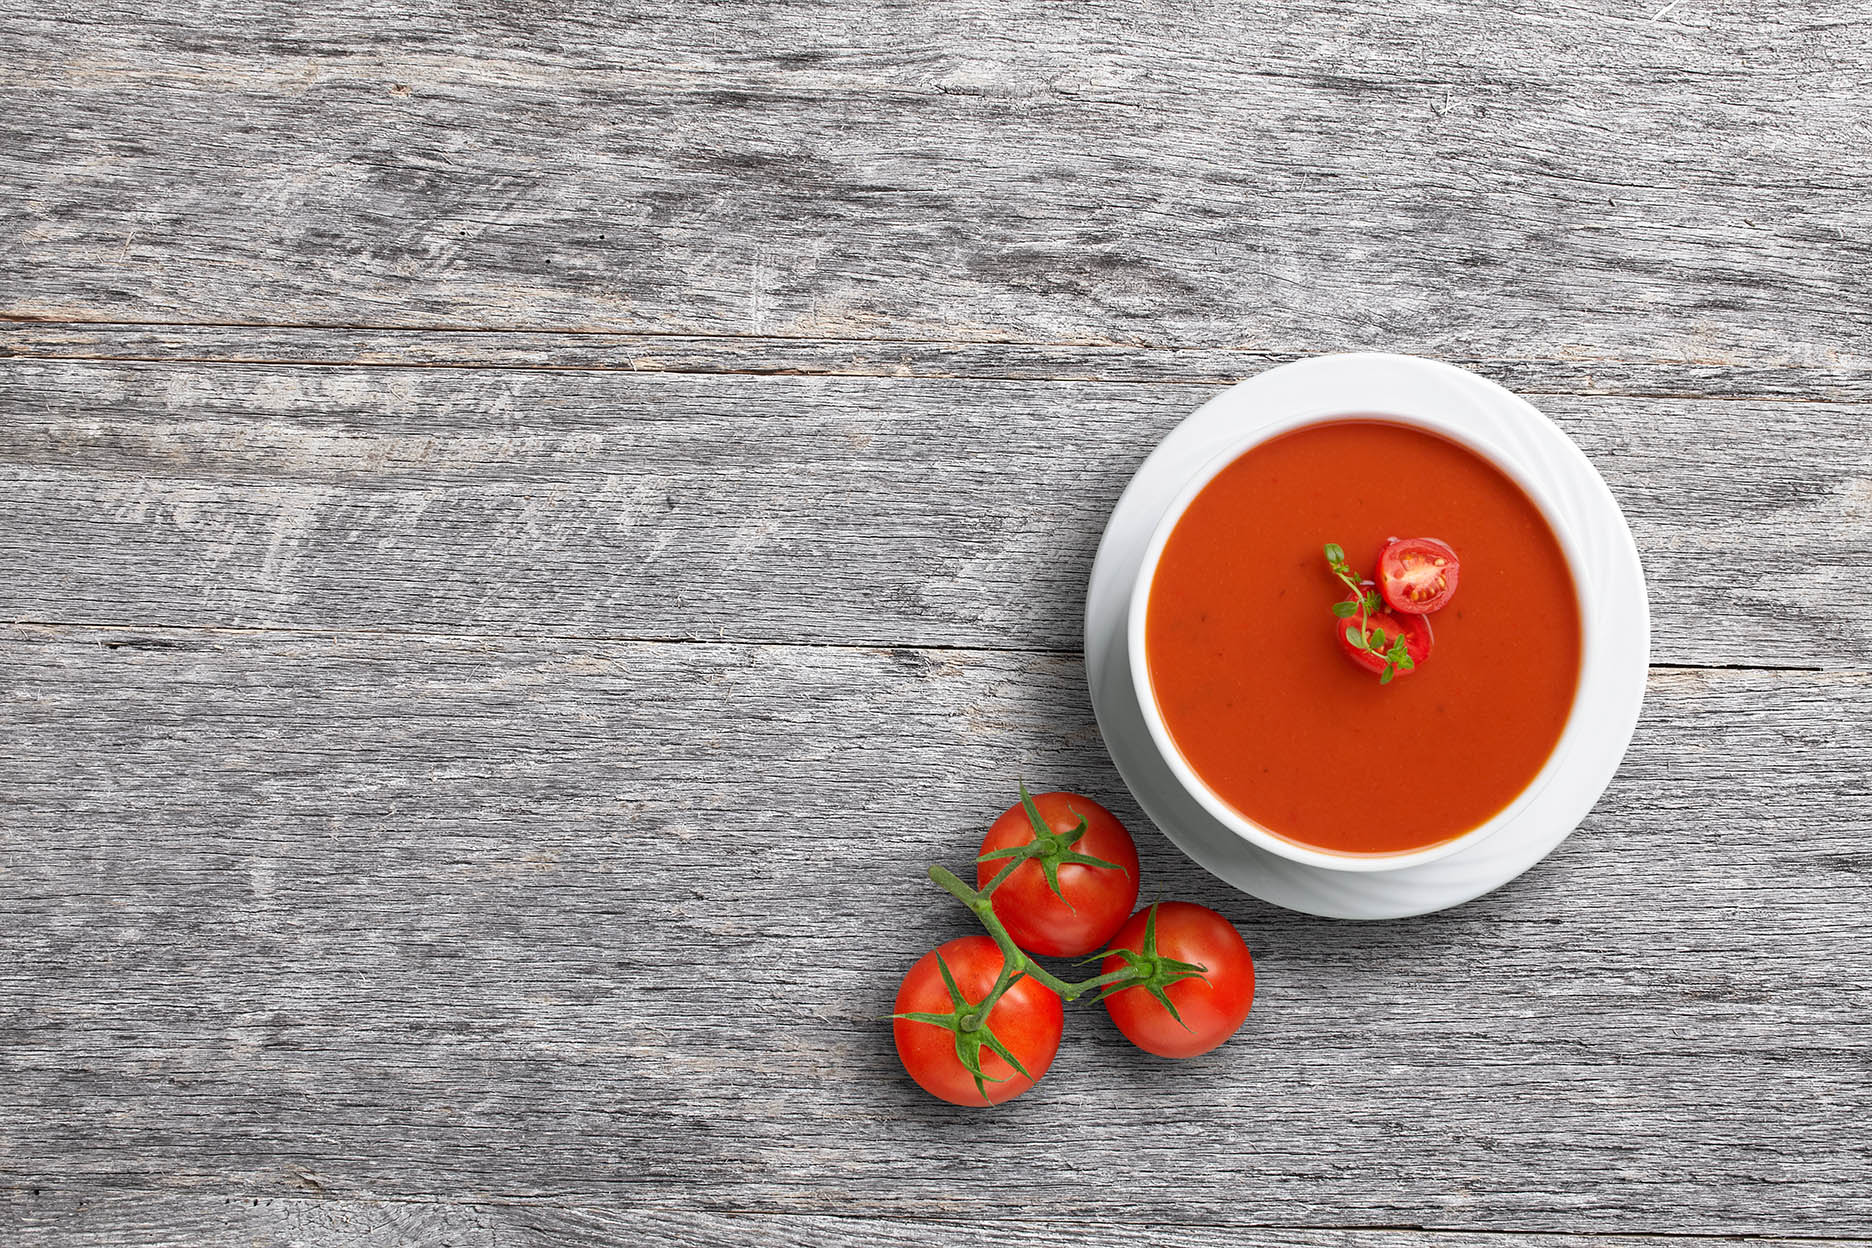 Dole • Tomato Vegetable Soup